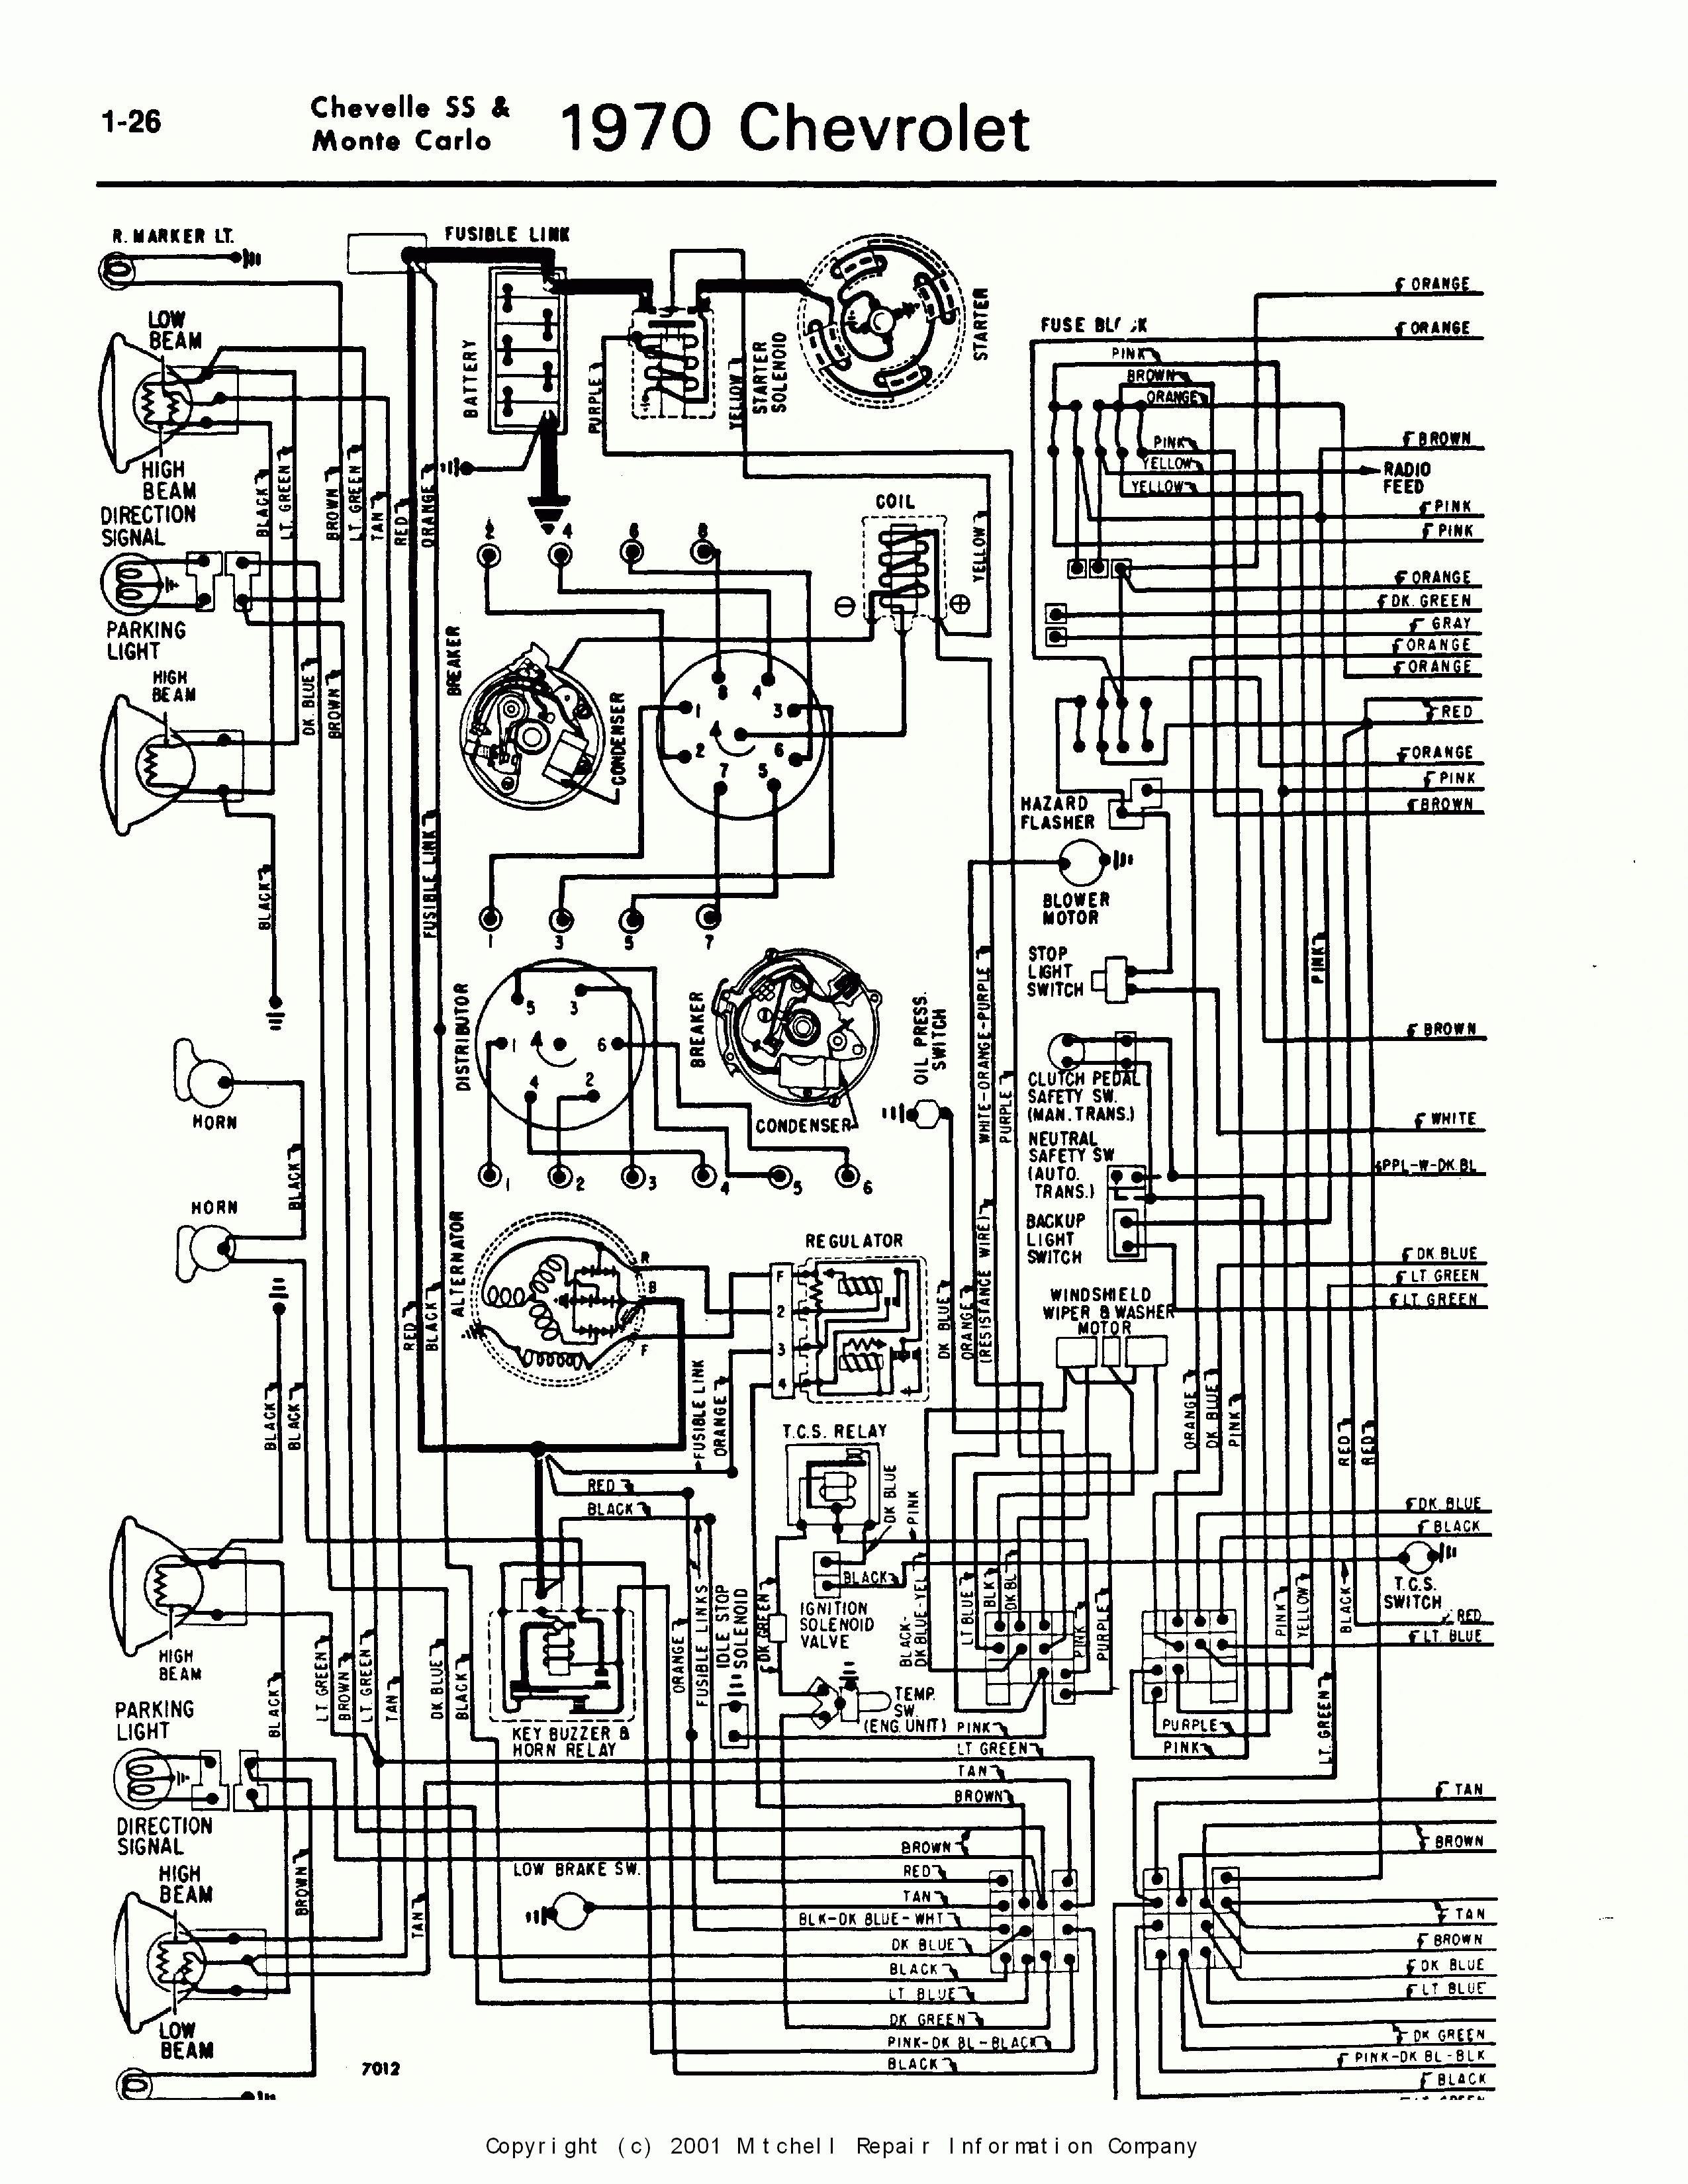 1971 Chevelle Wiring Diagram 1971 Novabackup Light Wiring Diagrams Wiring Diagram Used Of 1971 Chevelle Wiring Diagram 1971 Chevy 4×4 Wiring Diagram Wiring Diagram Datasource